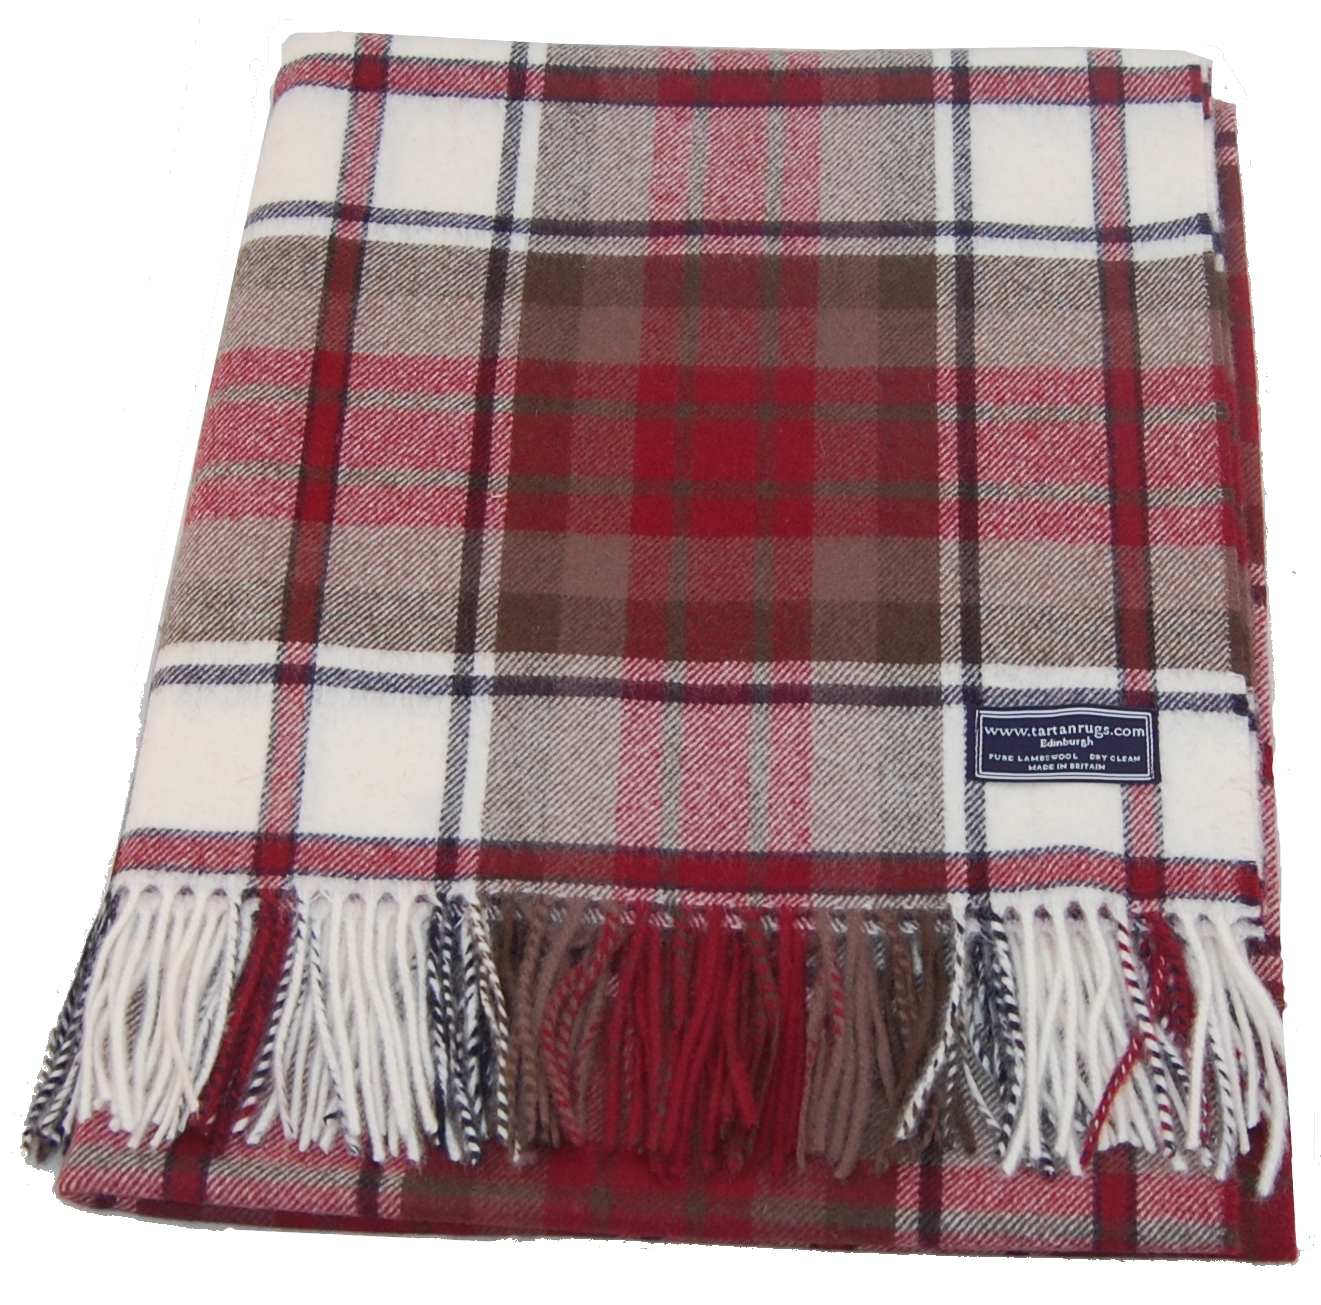 natural dress stewart tartan lambswool travel rug. Black Bedroom Furniture Sets. Home Design Ideas